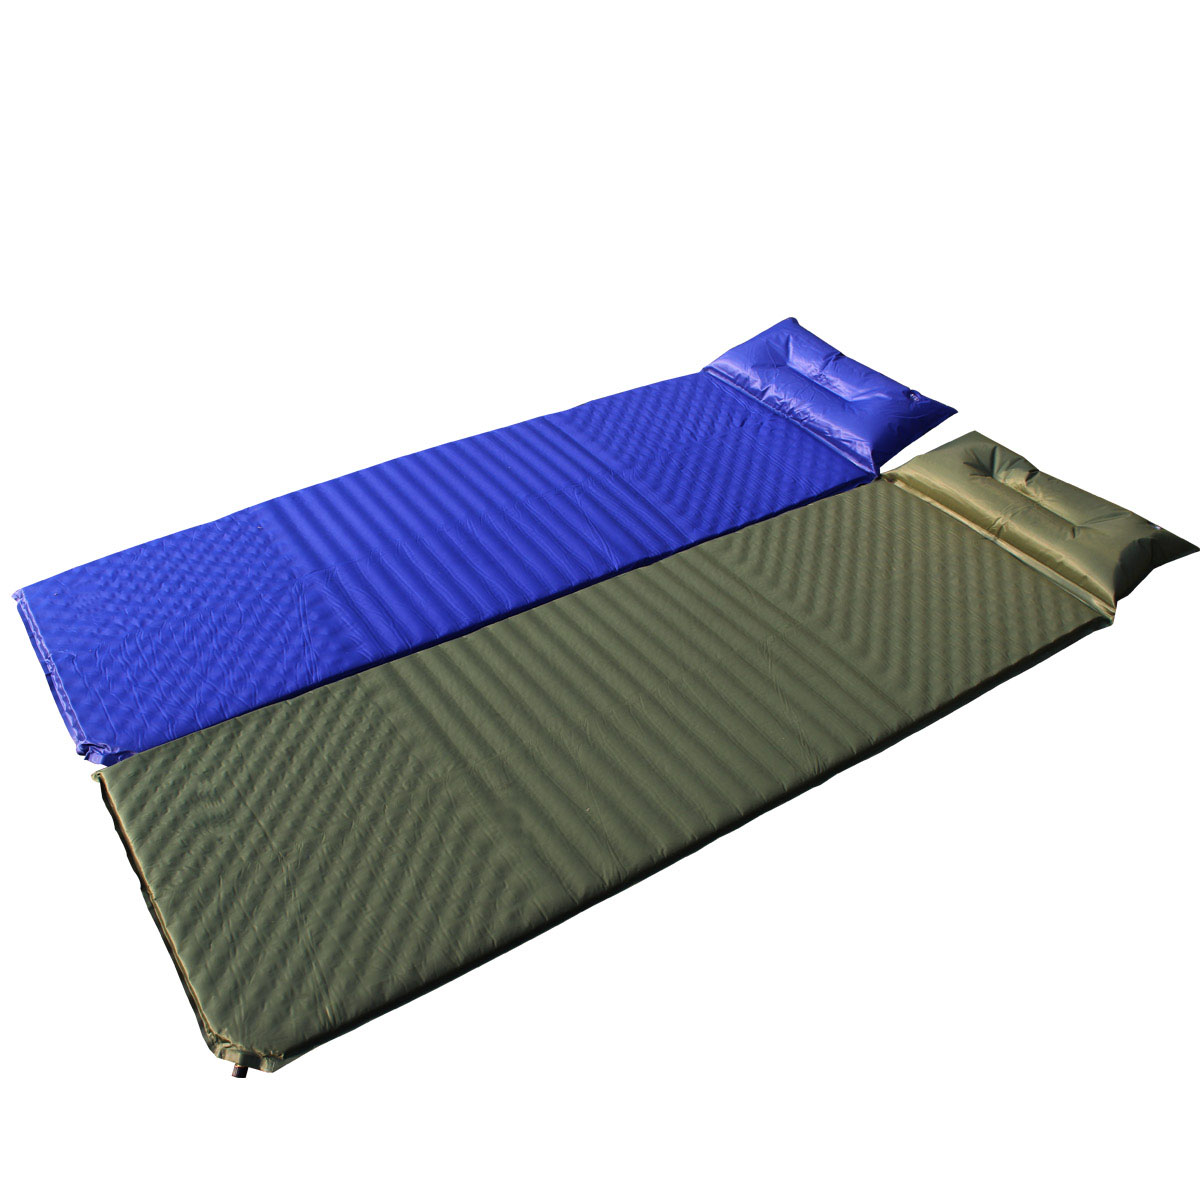 Chanodug Outdoor With Pillow Automatic Inflatable Cushion Sleeping Bag Mattress Tent Moisture Proof Pad Mat In Camping From Sports Entertainment On